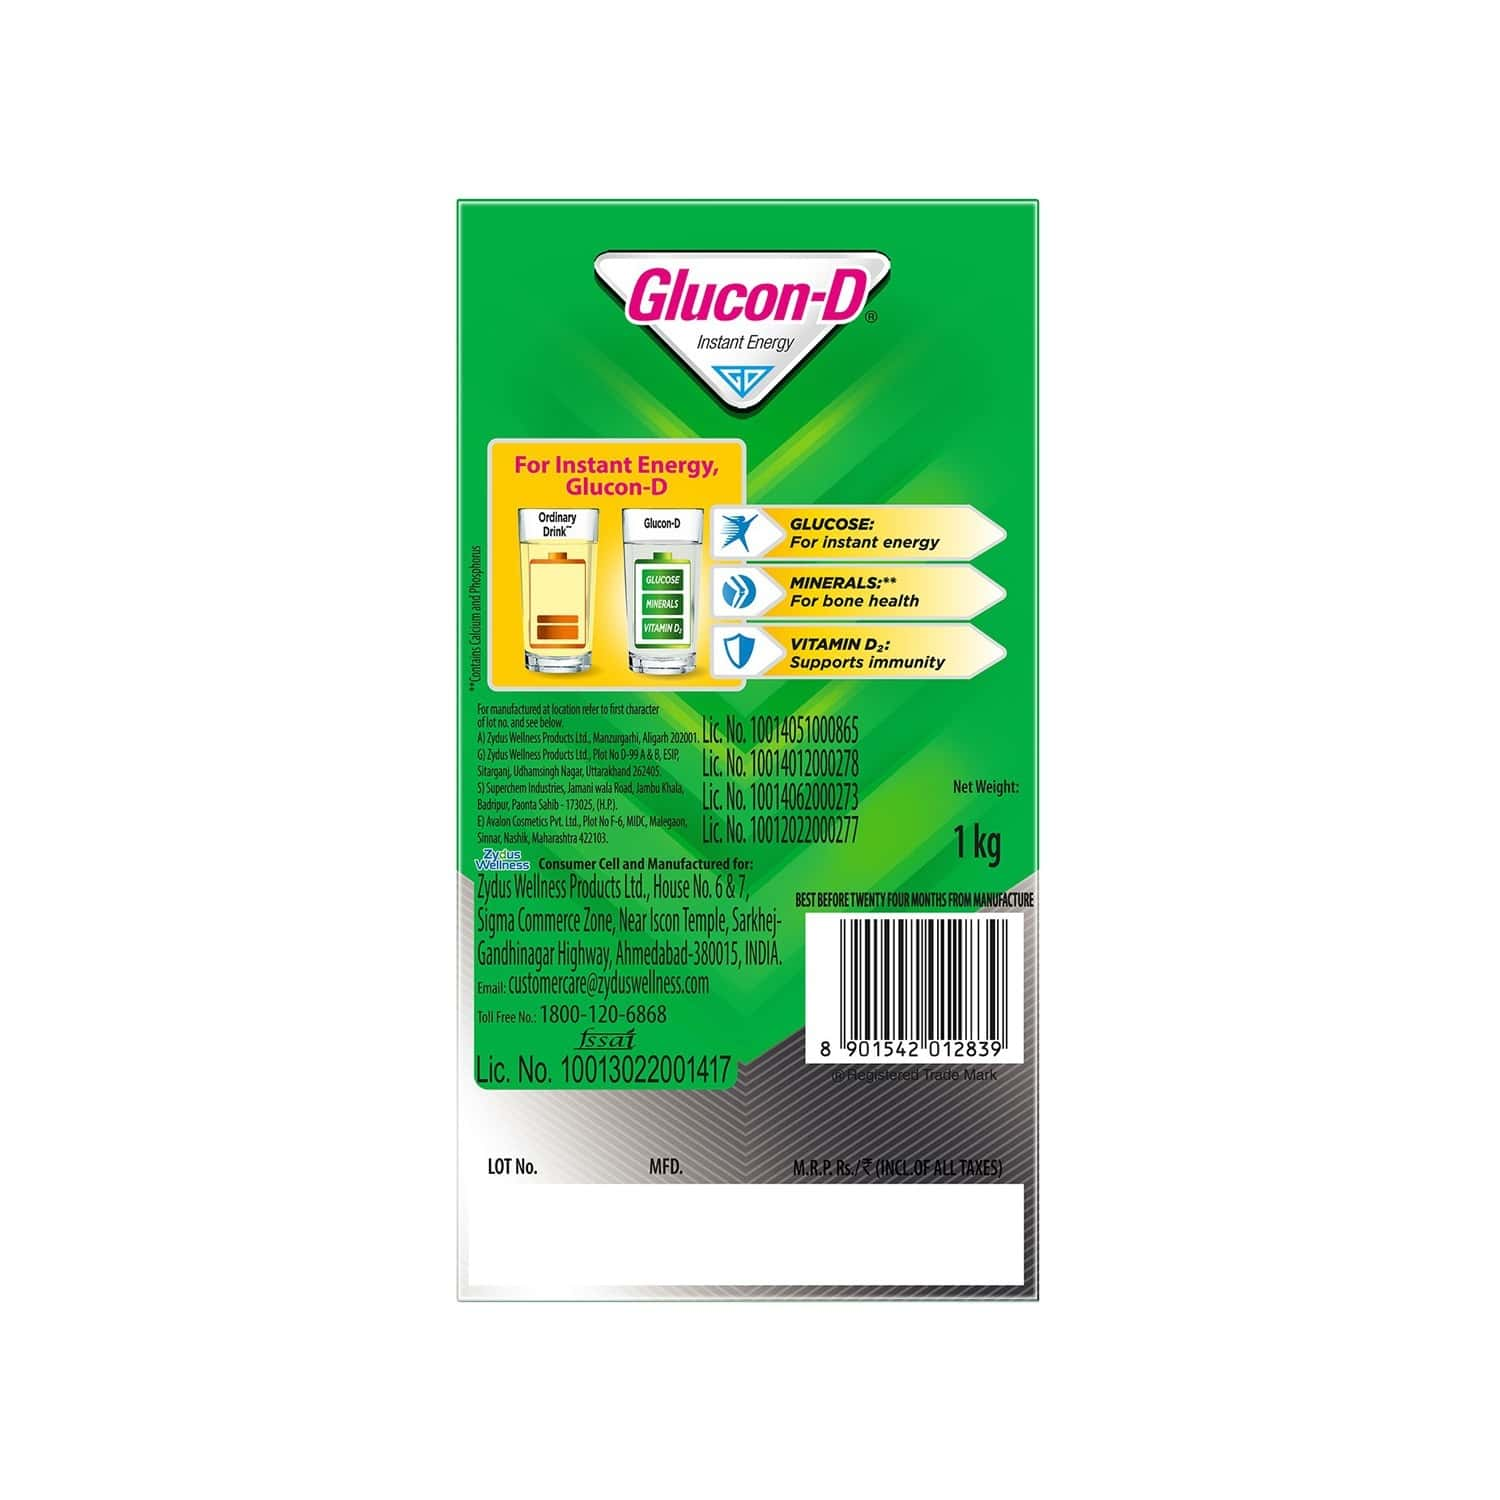 Glucon-d Regular Health Drink Refill Of 1 Kg